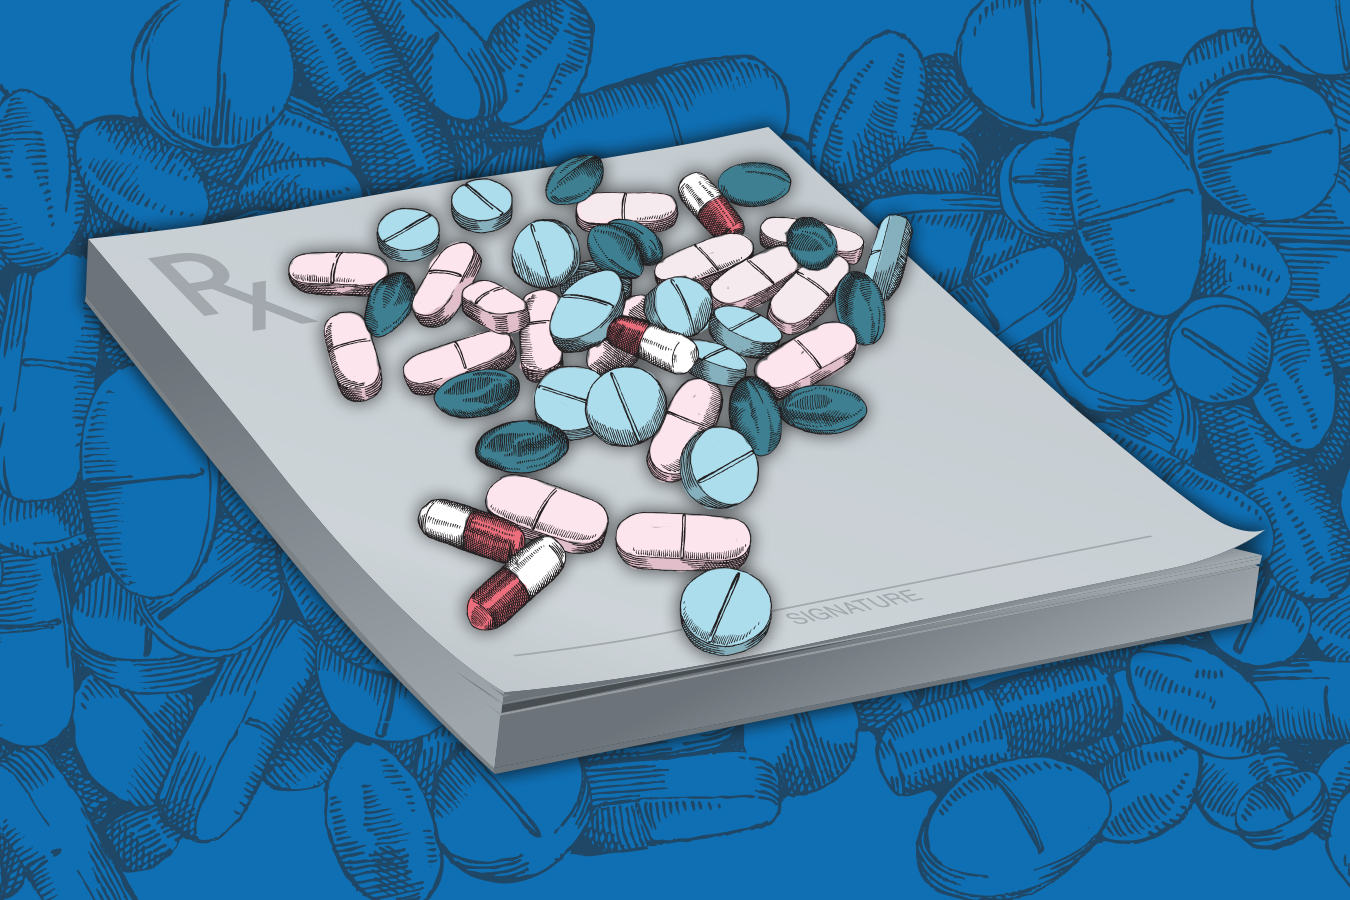 Opioid Operators: How Surgeons Ply Patients With Painkillers